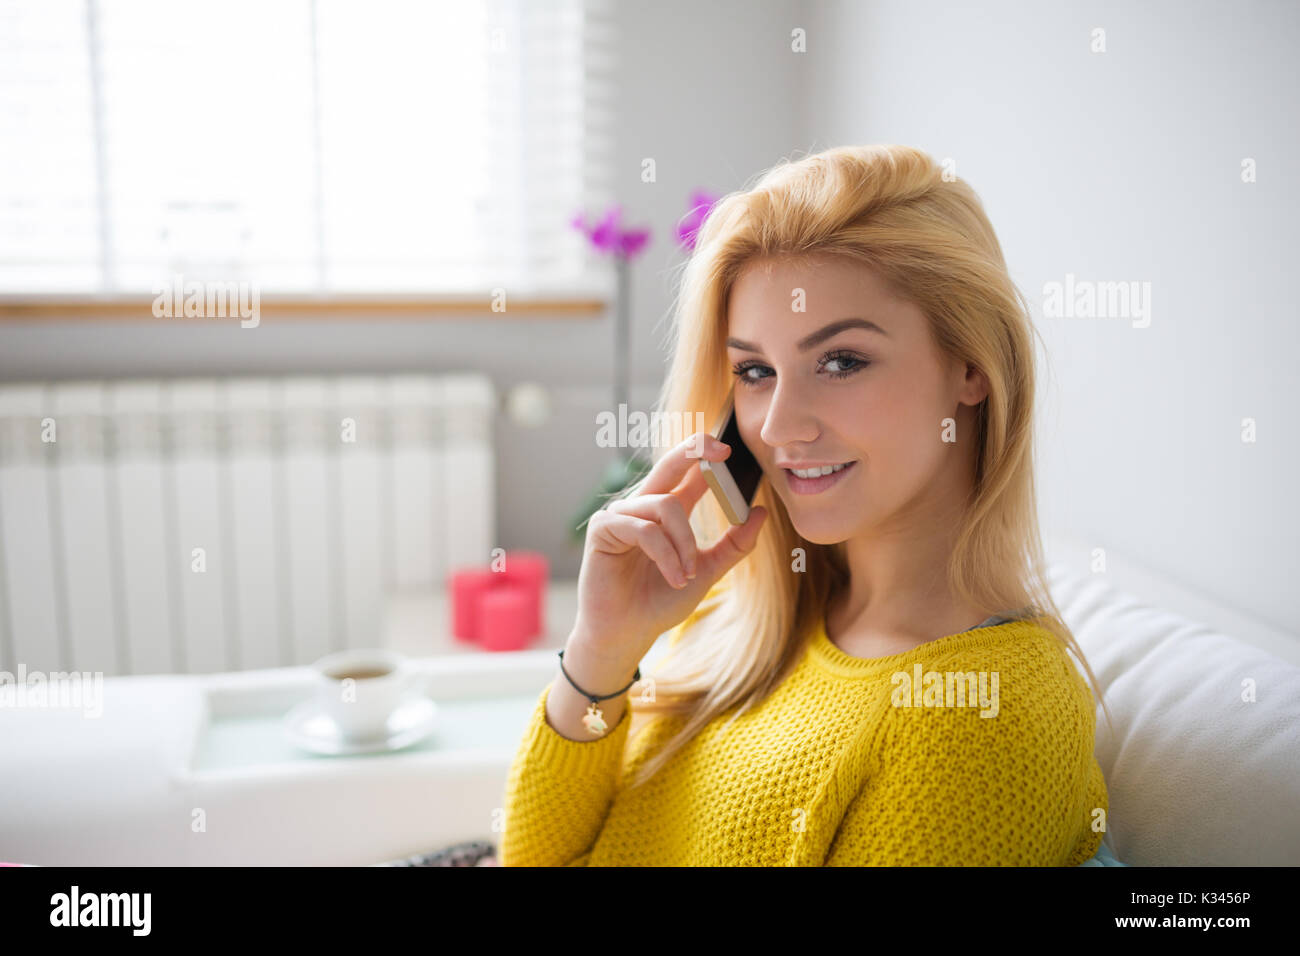 A photo of young, beautiful woman sitting on the couch and talking on the phone. - Stock Image